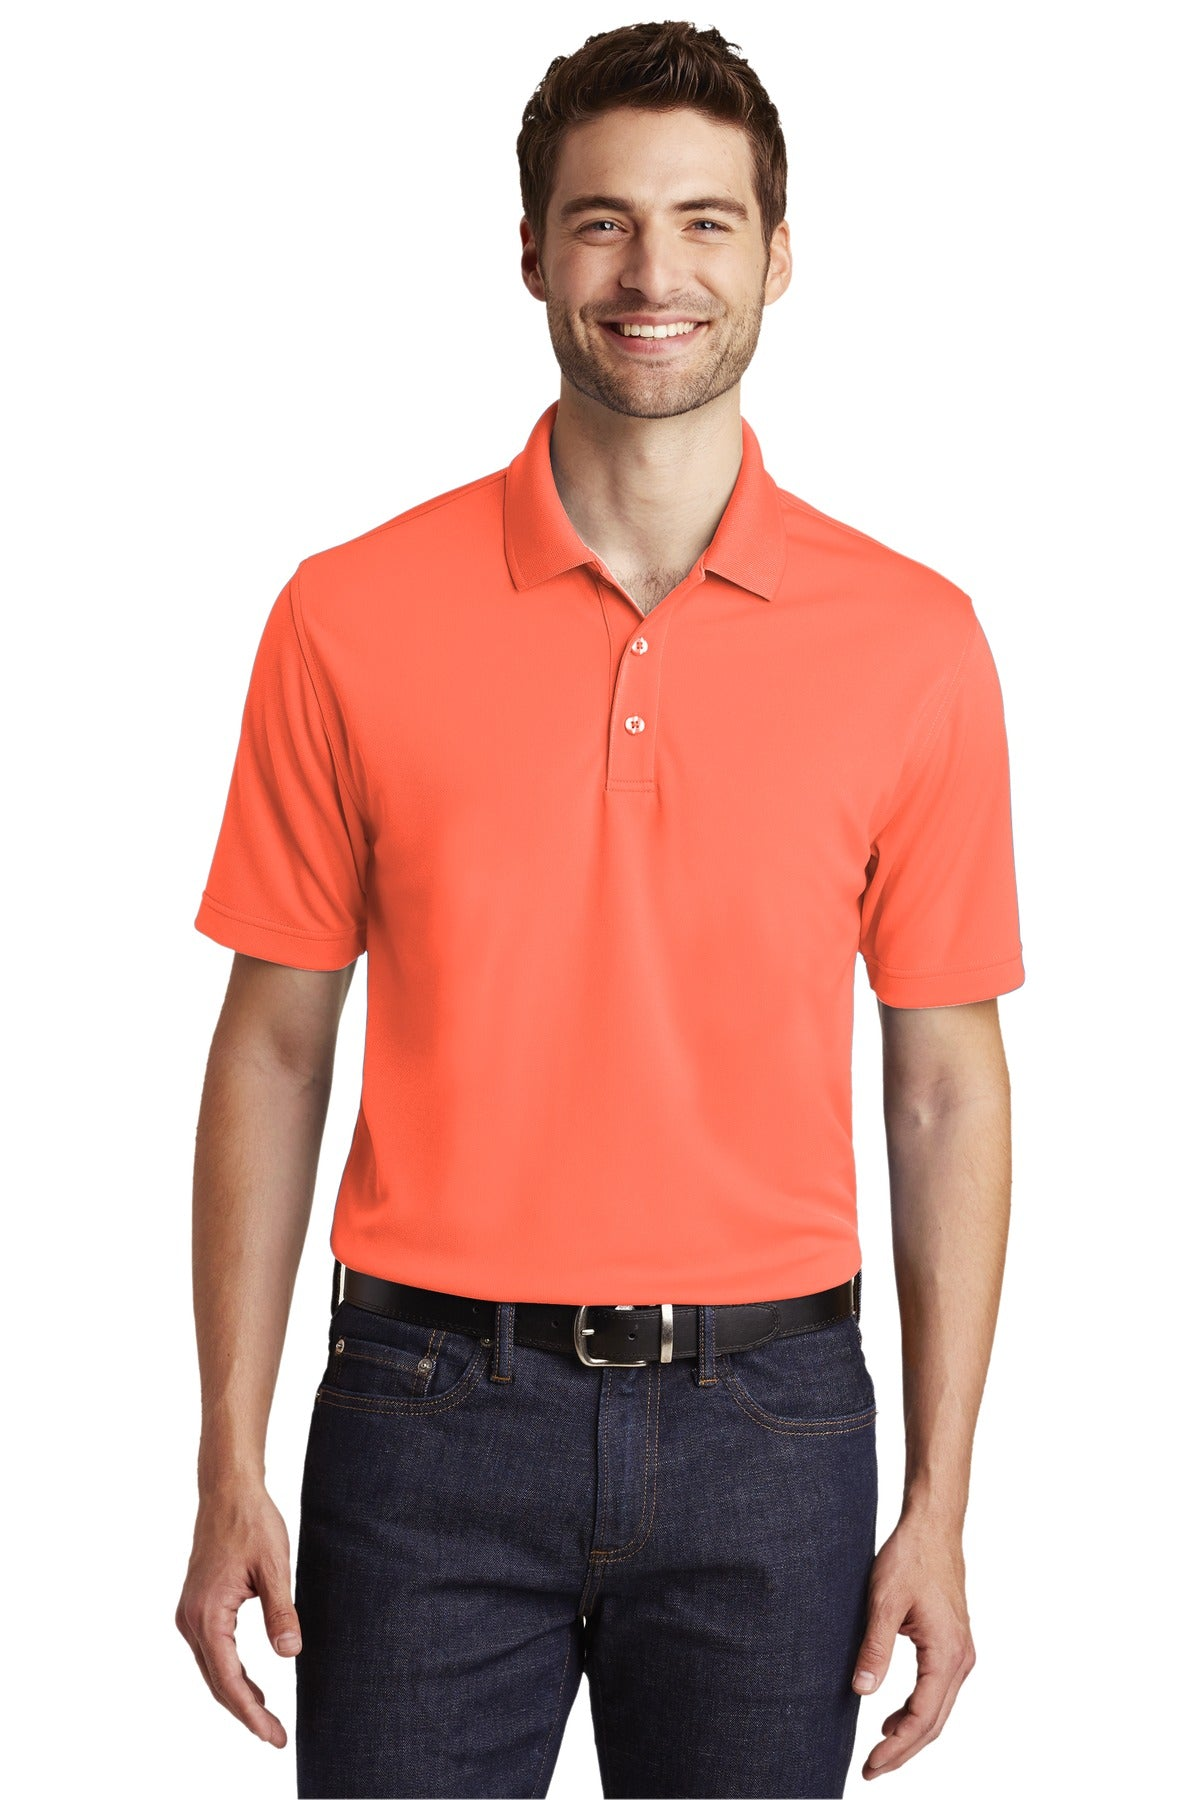 Royal Port Authority Heavyweight Cotton Pique Polo.